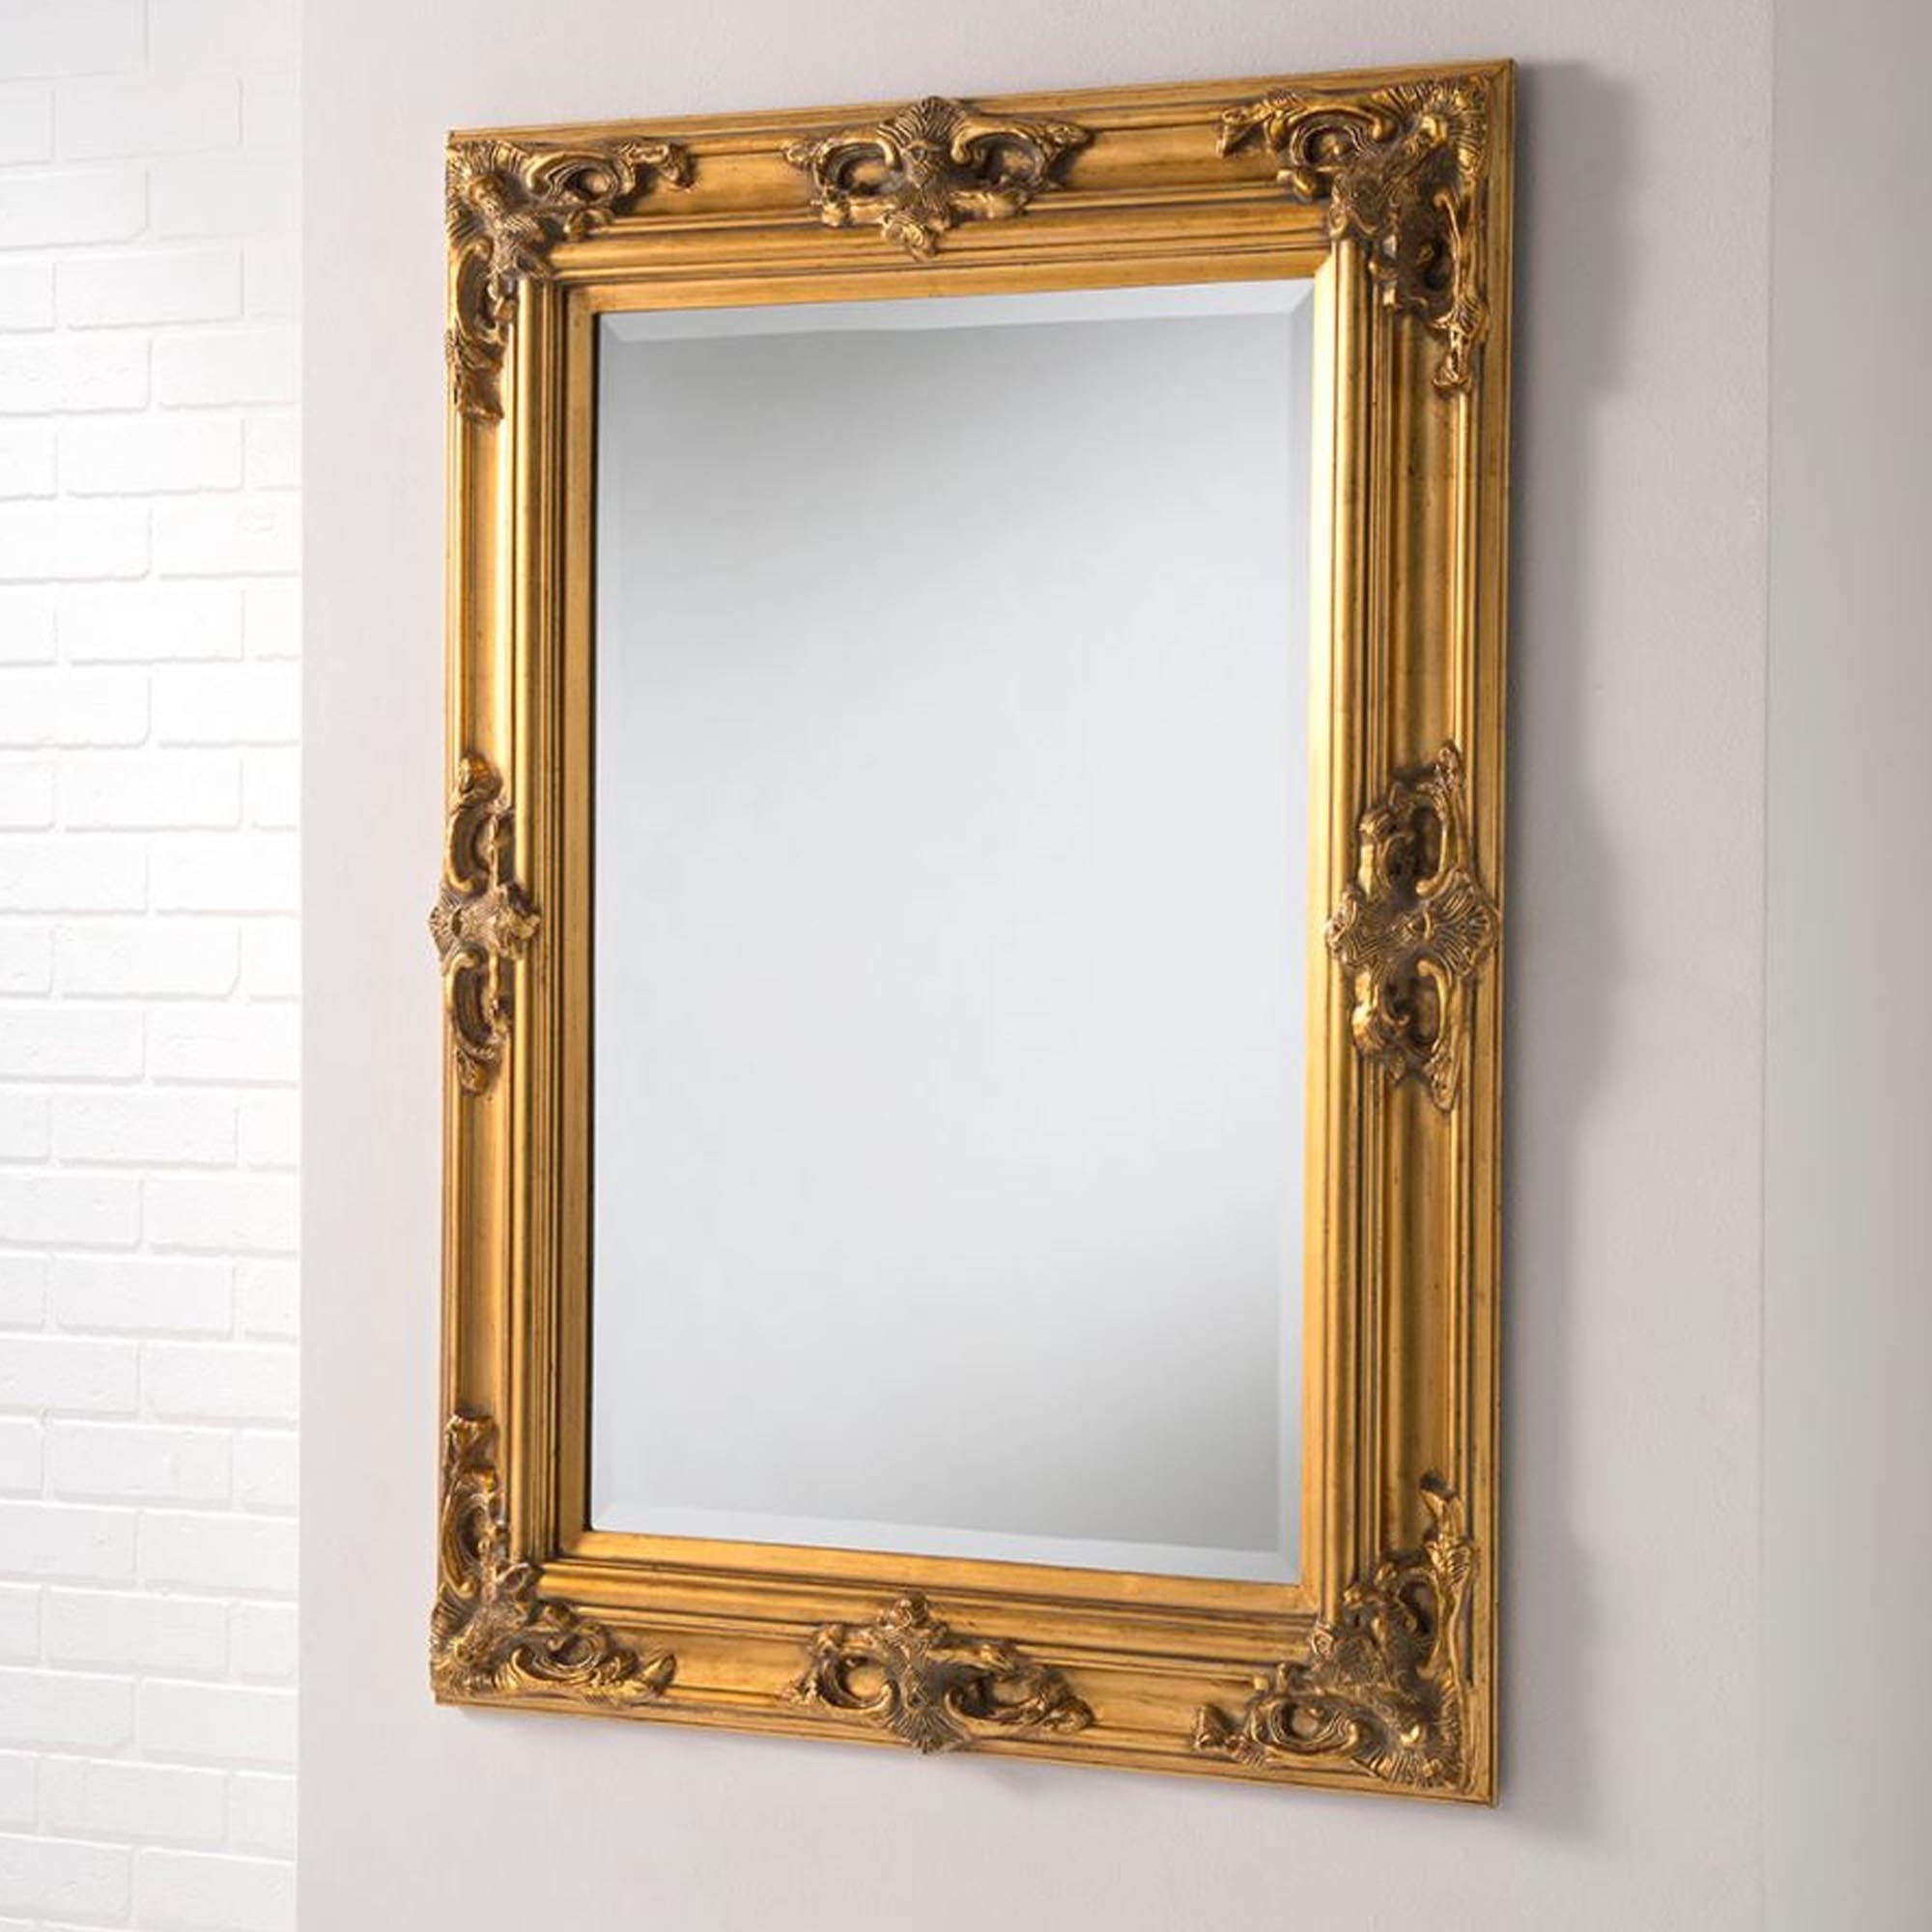 Widely Used Tuscany Antique French Style Gold Wall Mirror Intended For Antique Gold Wall Mirrors (Gallery 1 of 20)